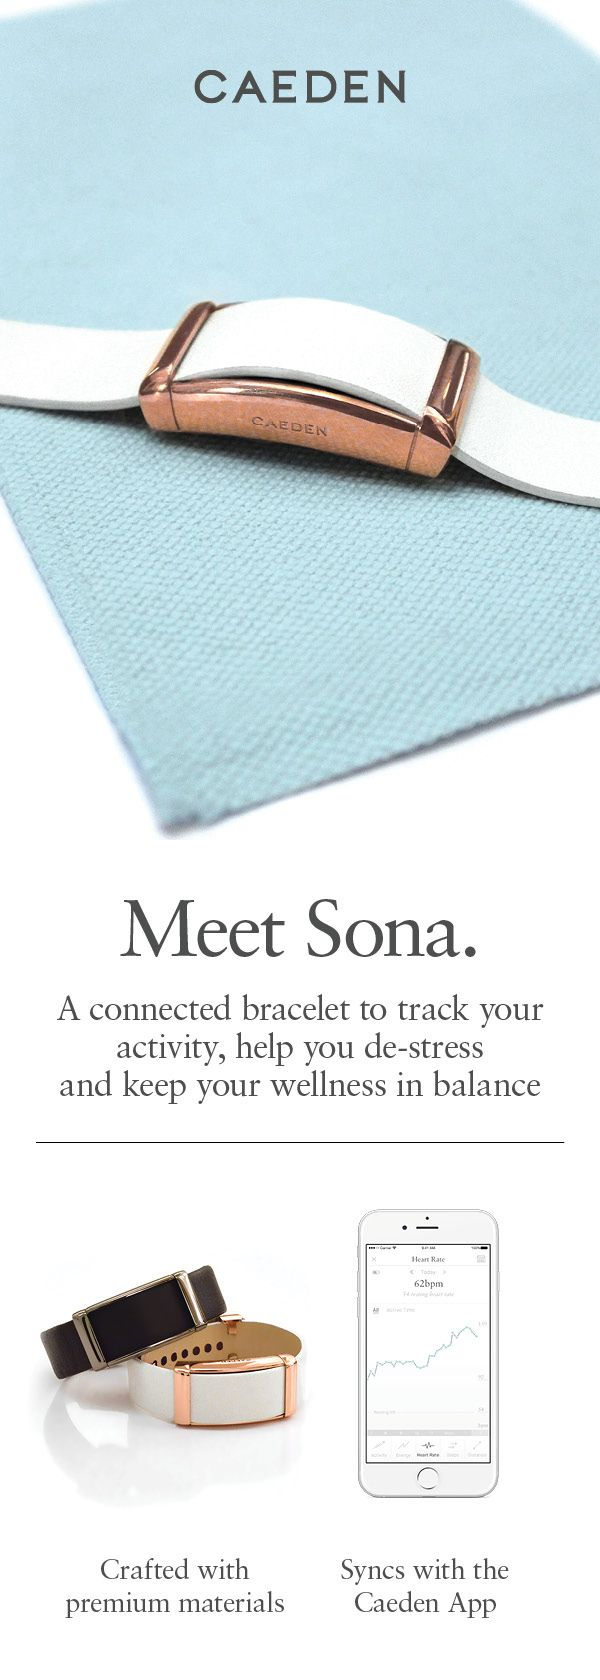 Sona isn't just another fitness bracelet that tracks calories and steps. The Sona Connected Bracelet improves focus and overall response to stress by measuring your heart rate variability (HRV). Connect with the Caeden App to access meditation exercises designed to build calm and resilience to stress. Available in Rose Gold, Gold and Gunmetal. Order yours now.